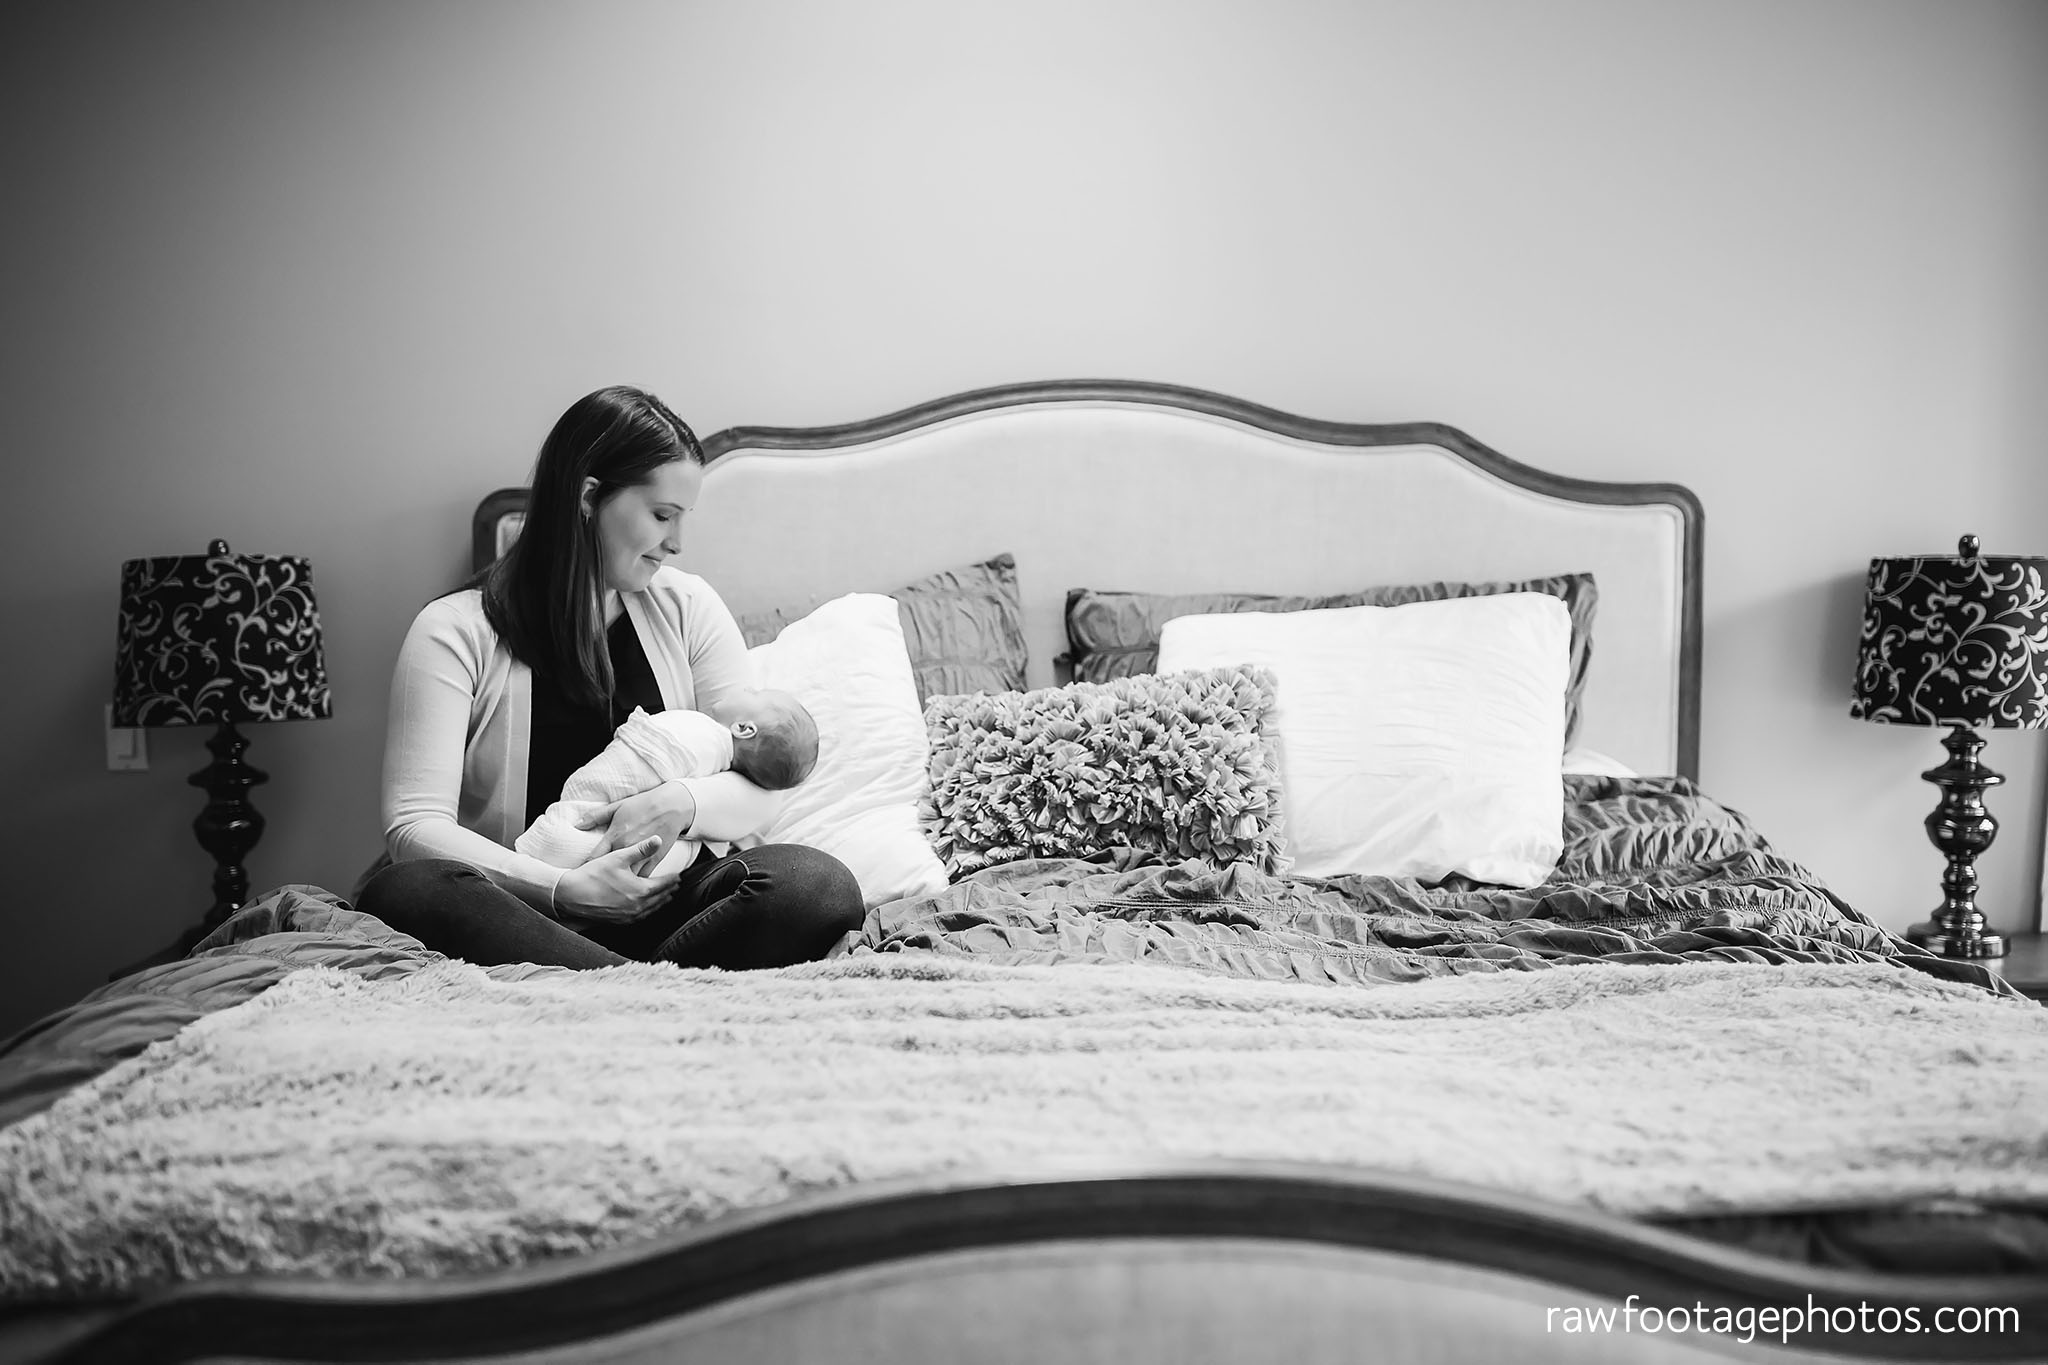 london_ontario_newborn_photographer-lifestyle_newborn_photography-in_home_newborn_session-raw_footage_photography007.jpg